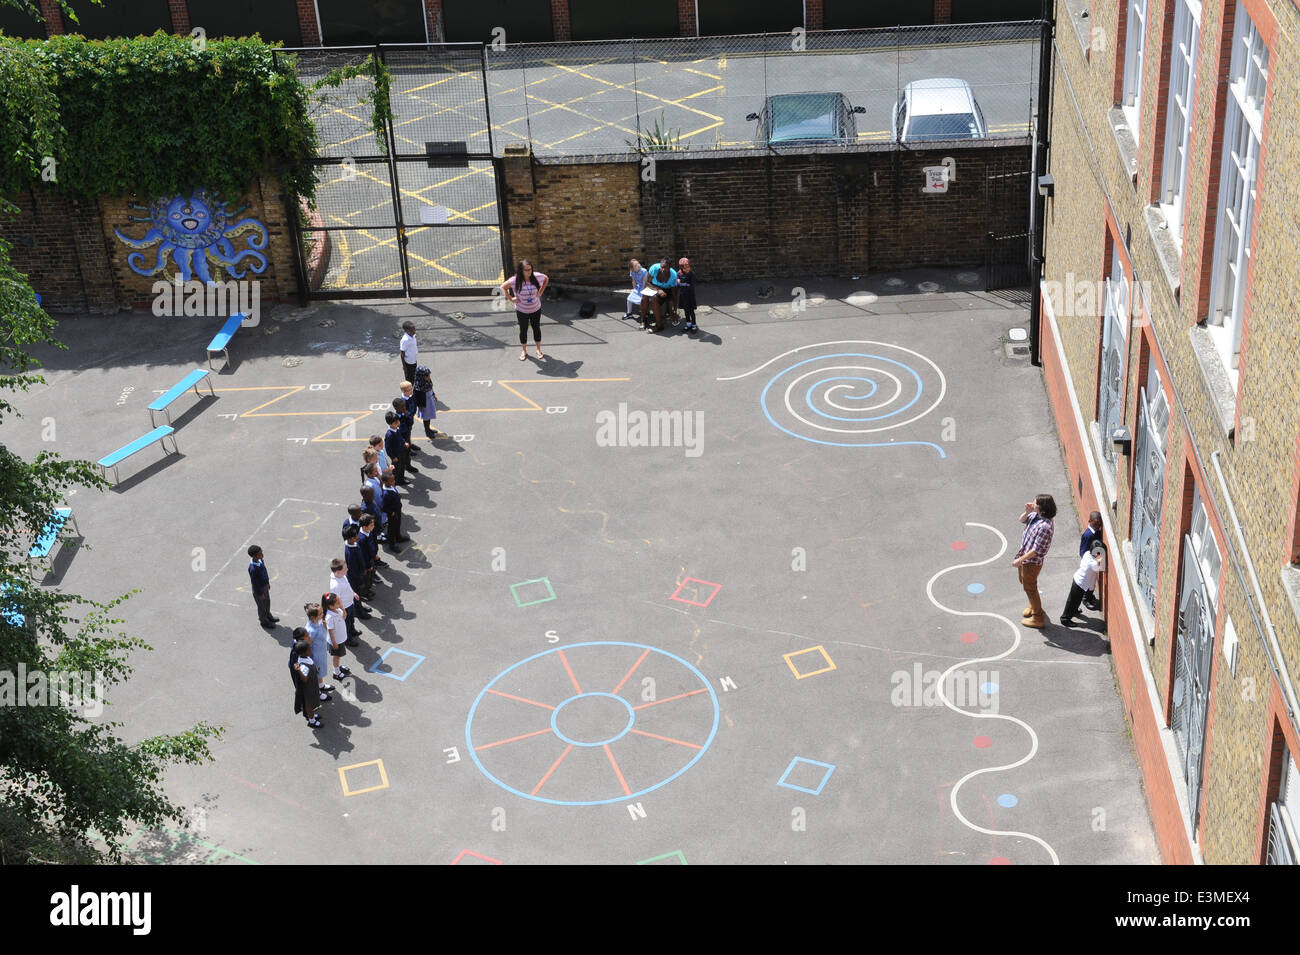 School children playing in a school playground in an inner city london primary school. - Stock Image